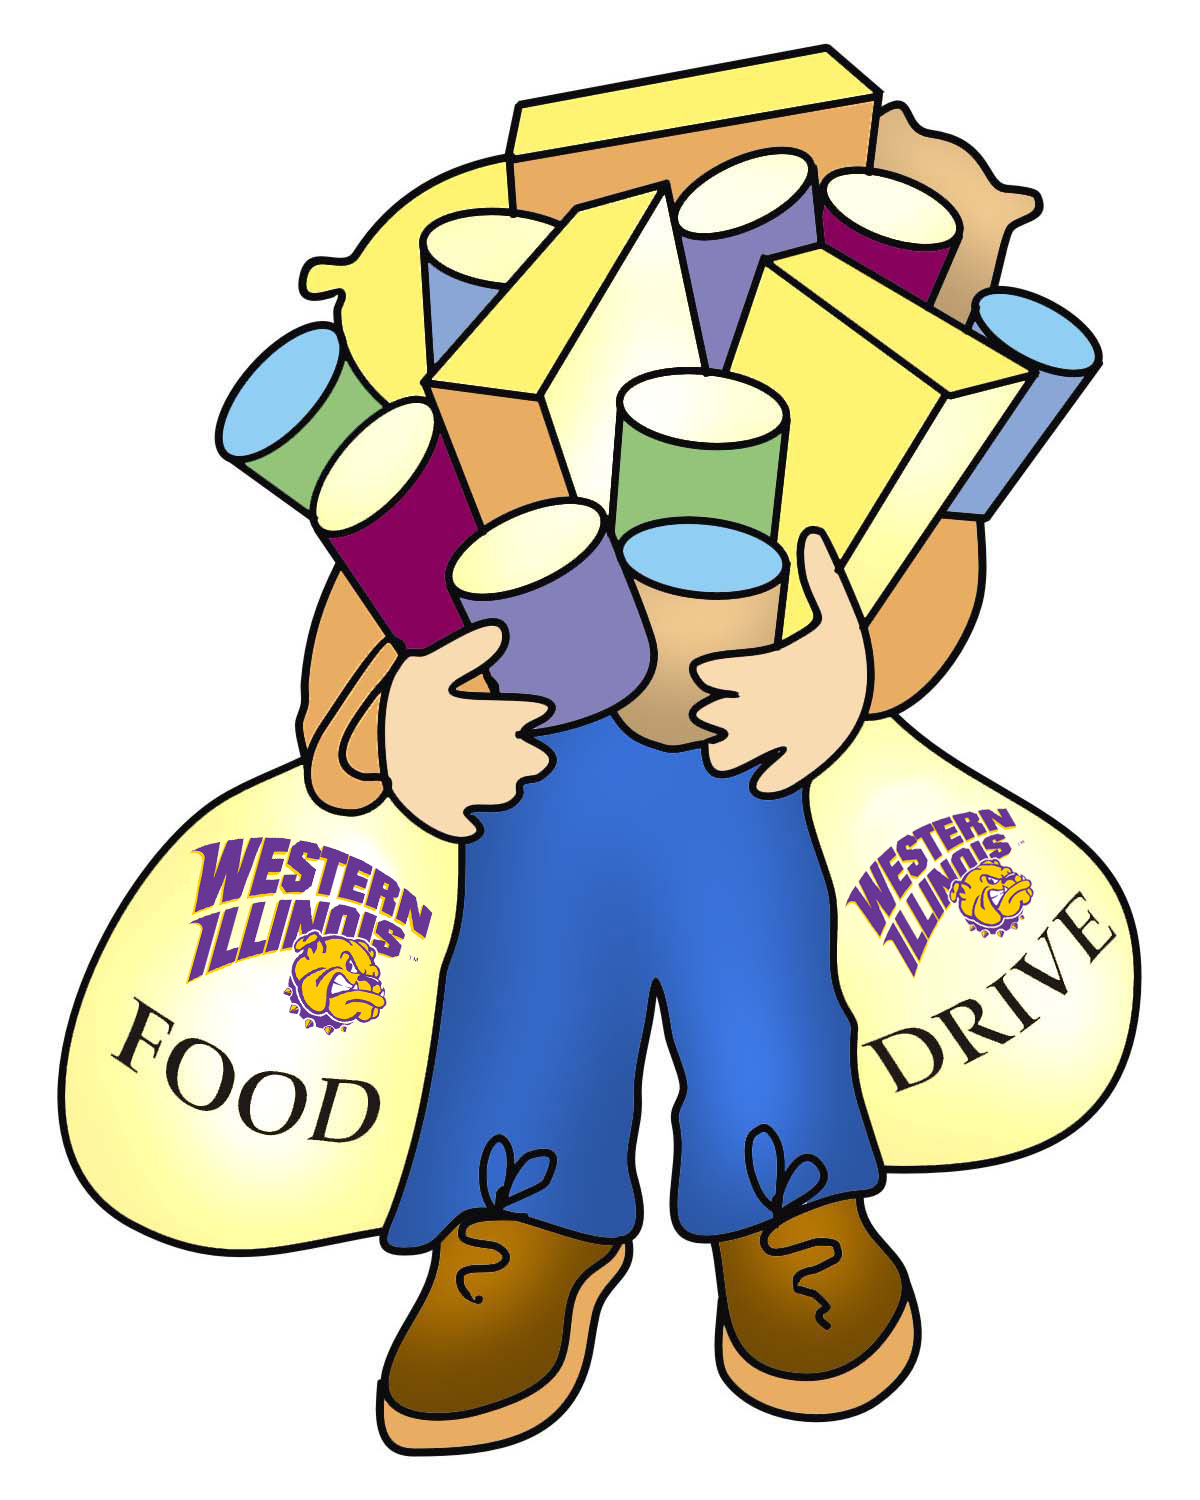 Shermanhall cliparts clipart freeuse download WIU-QC Food Drive, Presentation - Western Illinois ... clipart freeuse download